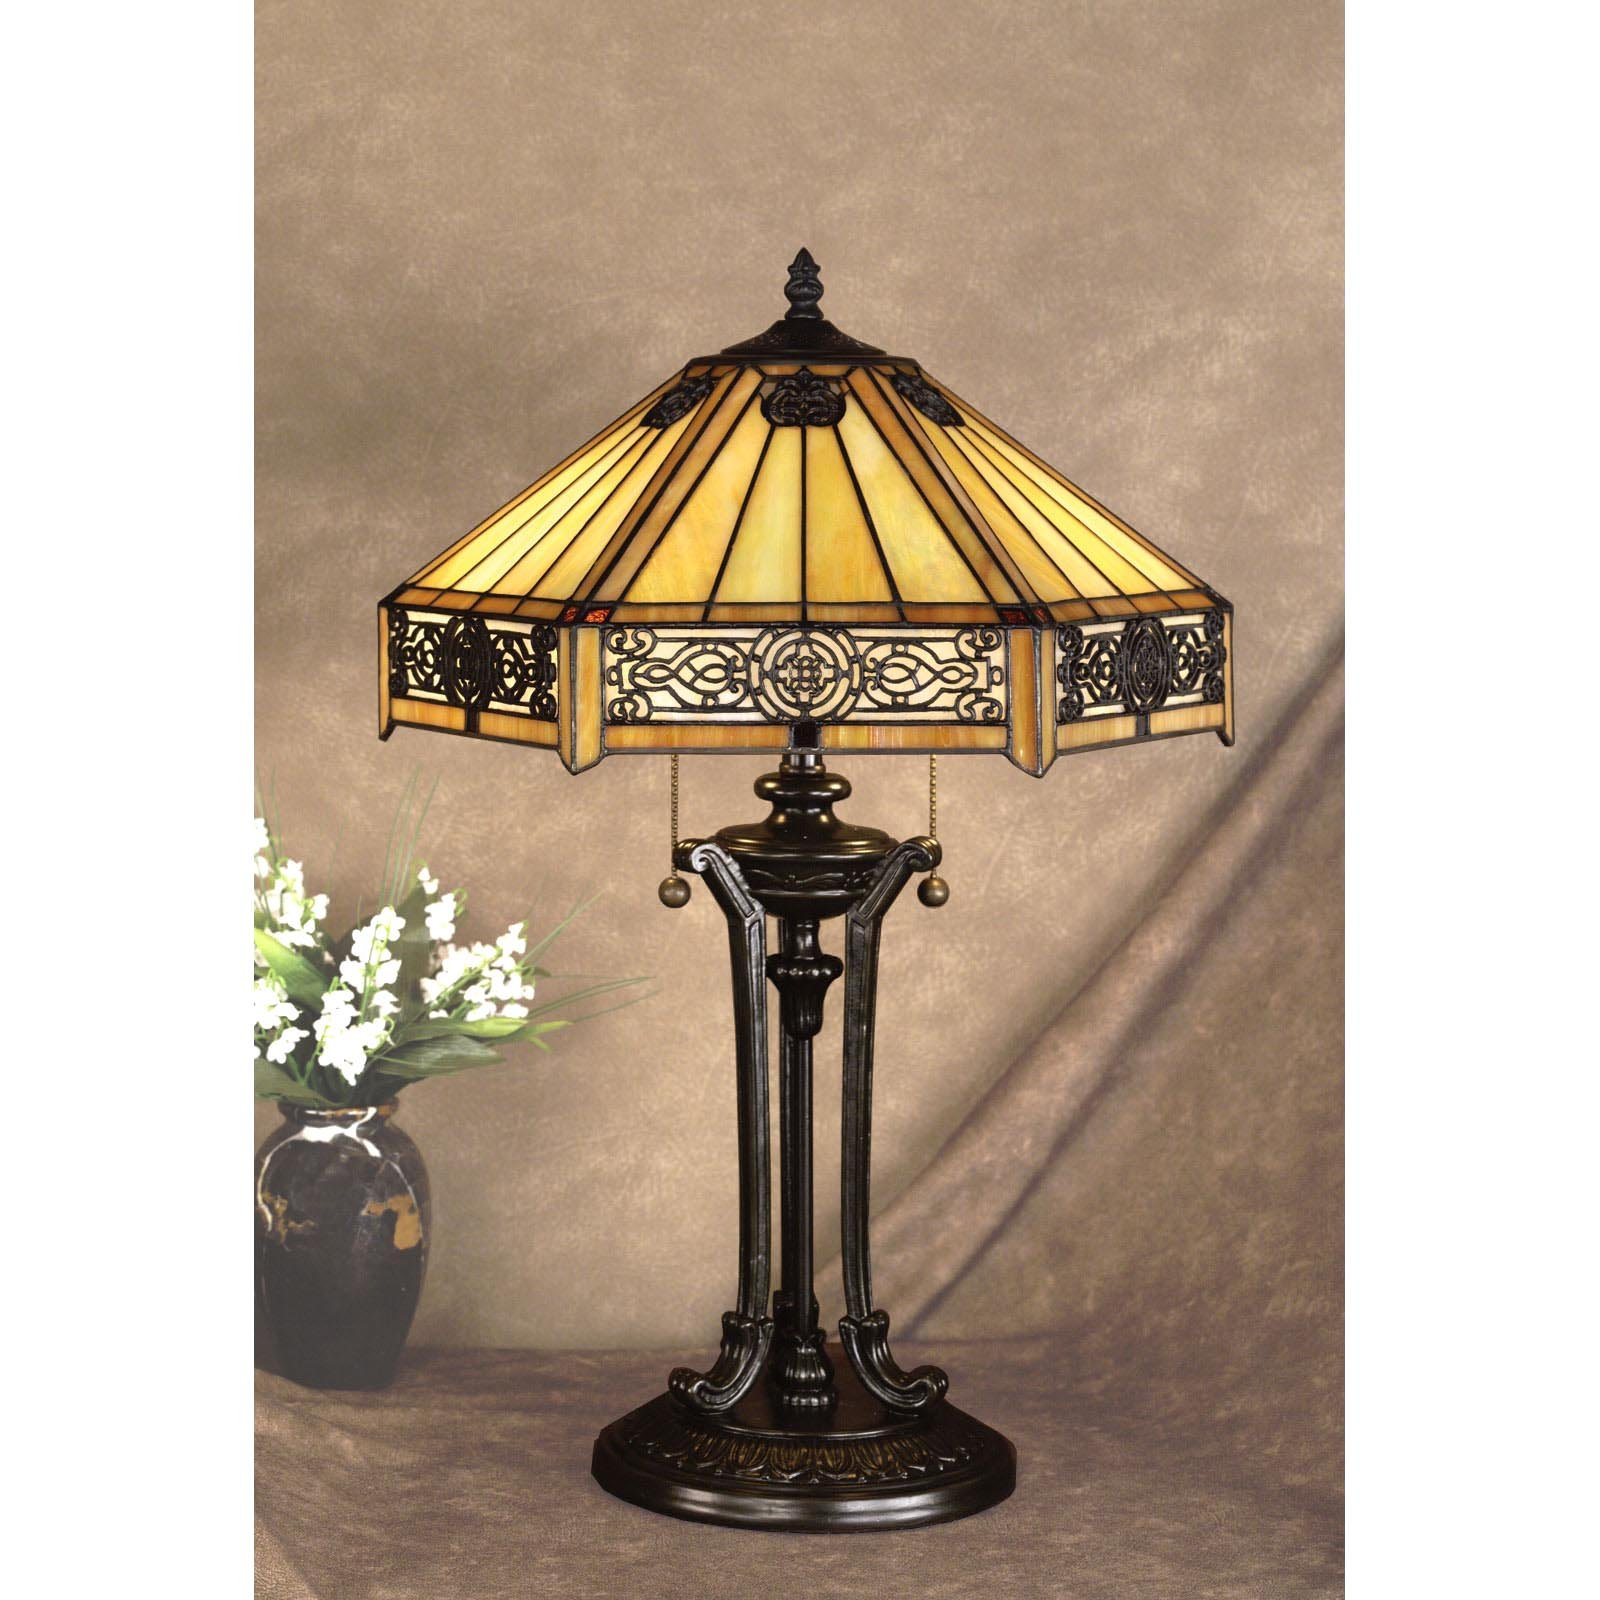 Tiffany Lamp Quoizel On Winlights Com Deluxe Interior